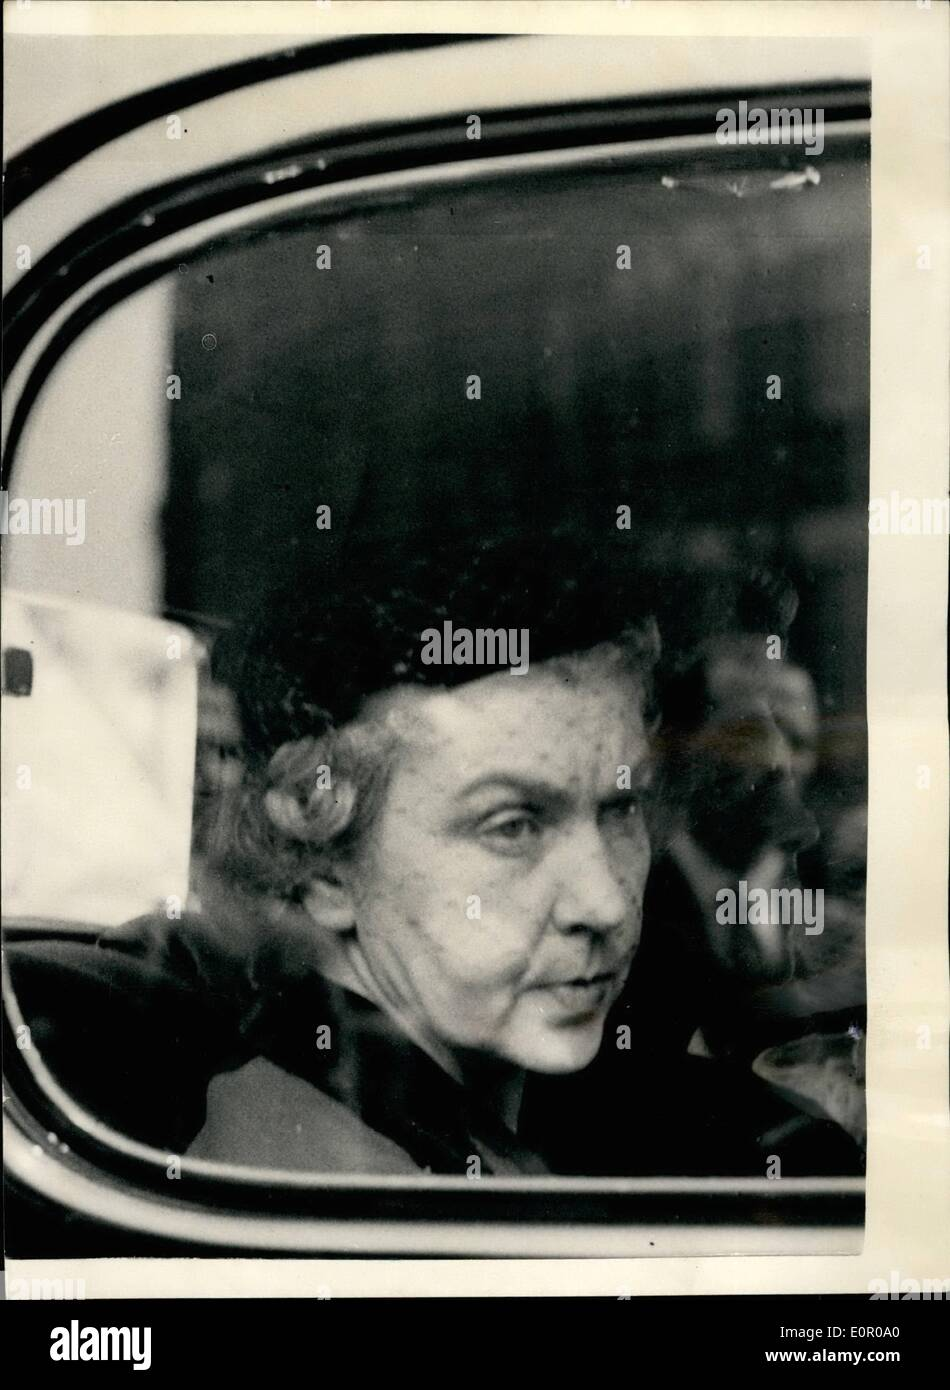 Jun. 01, 1957 - 1-6-57 Funeral of murdered Polish Countess. Her niece attends. The funeral took place this morning Stock Photo